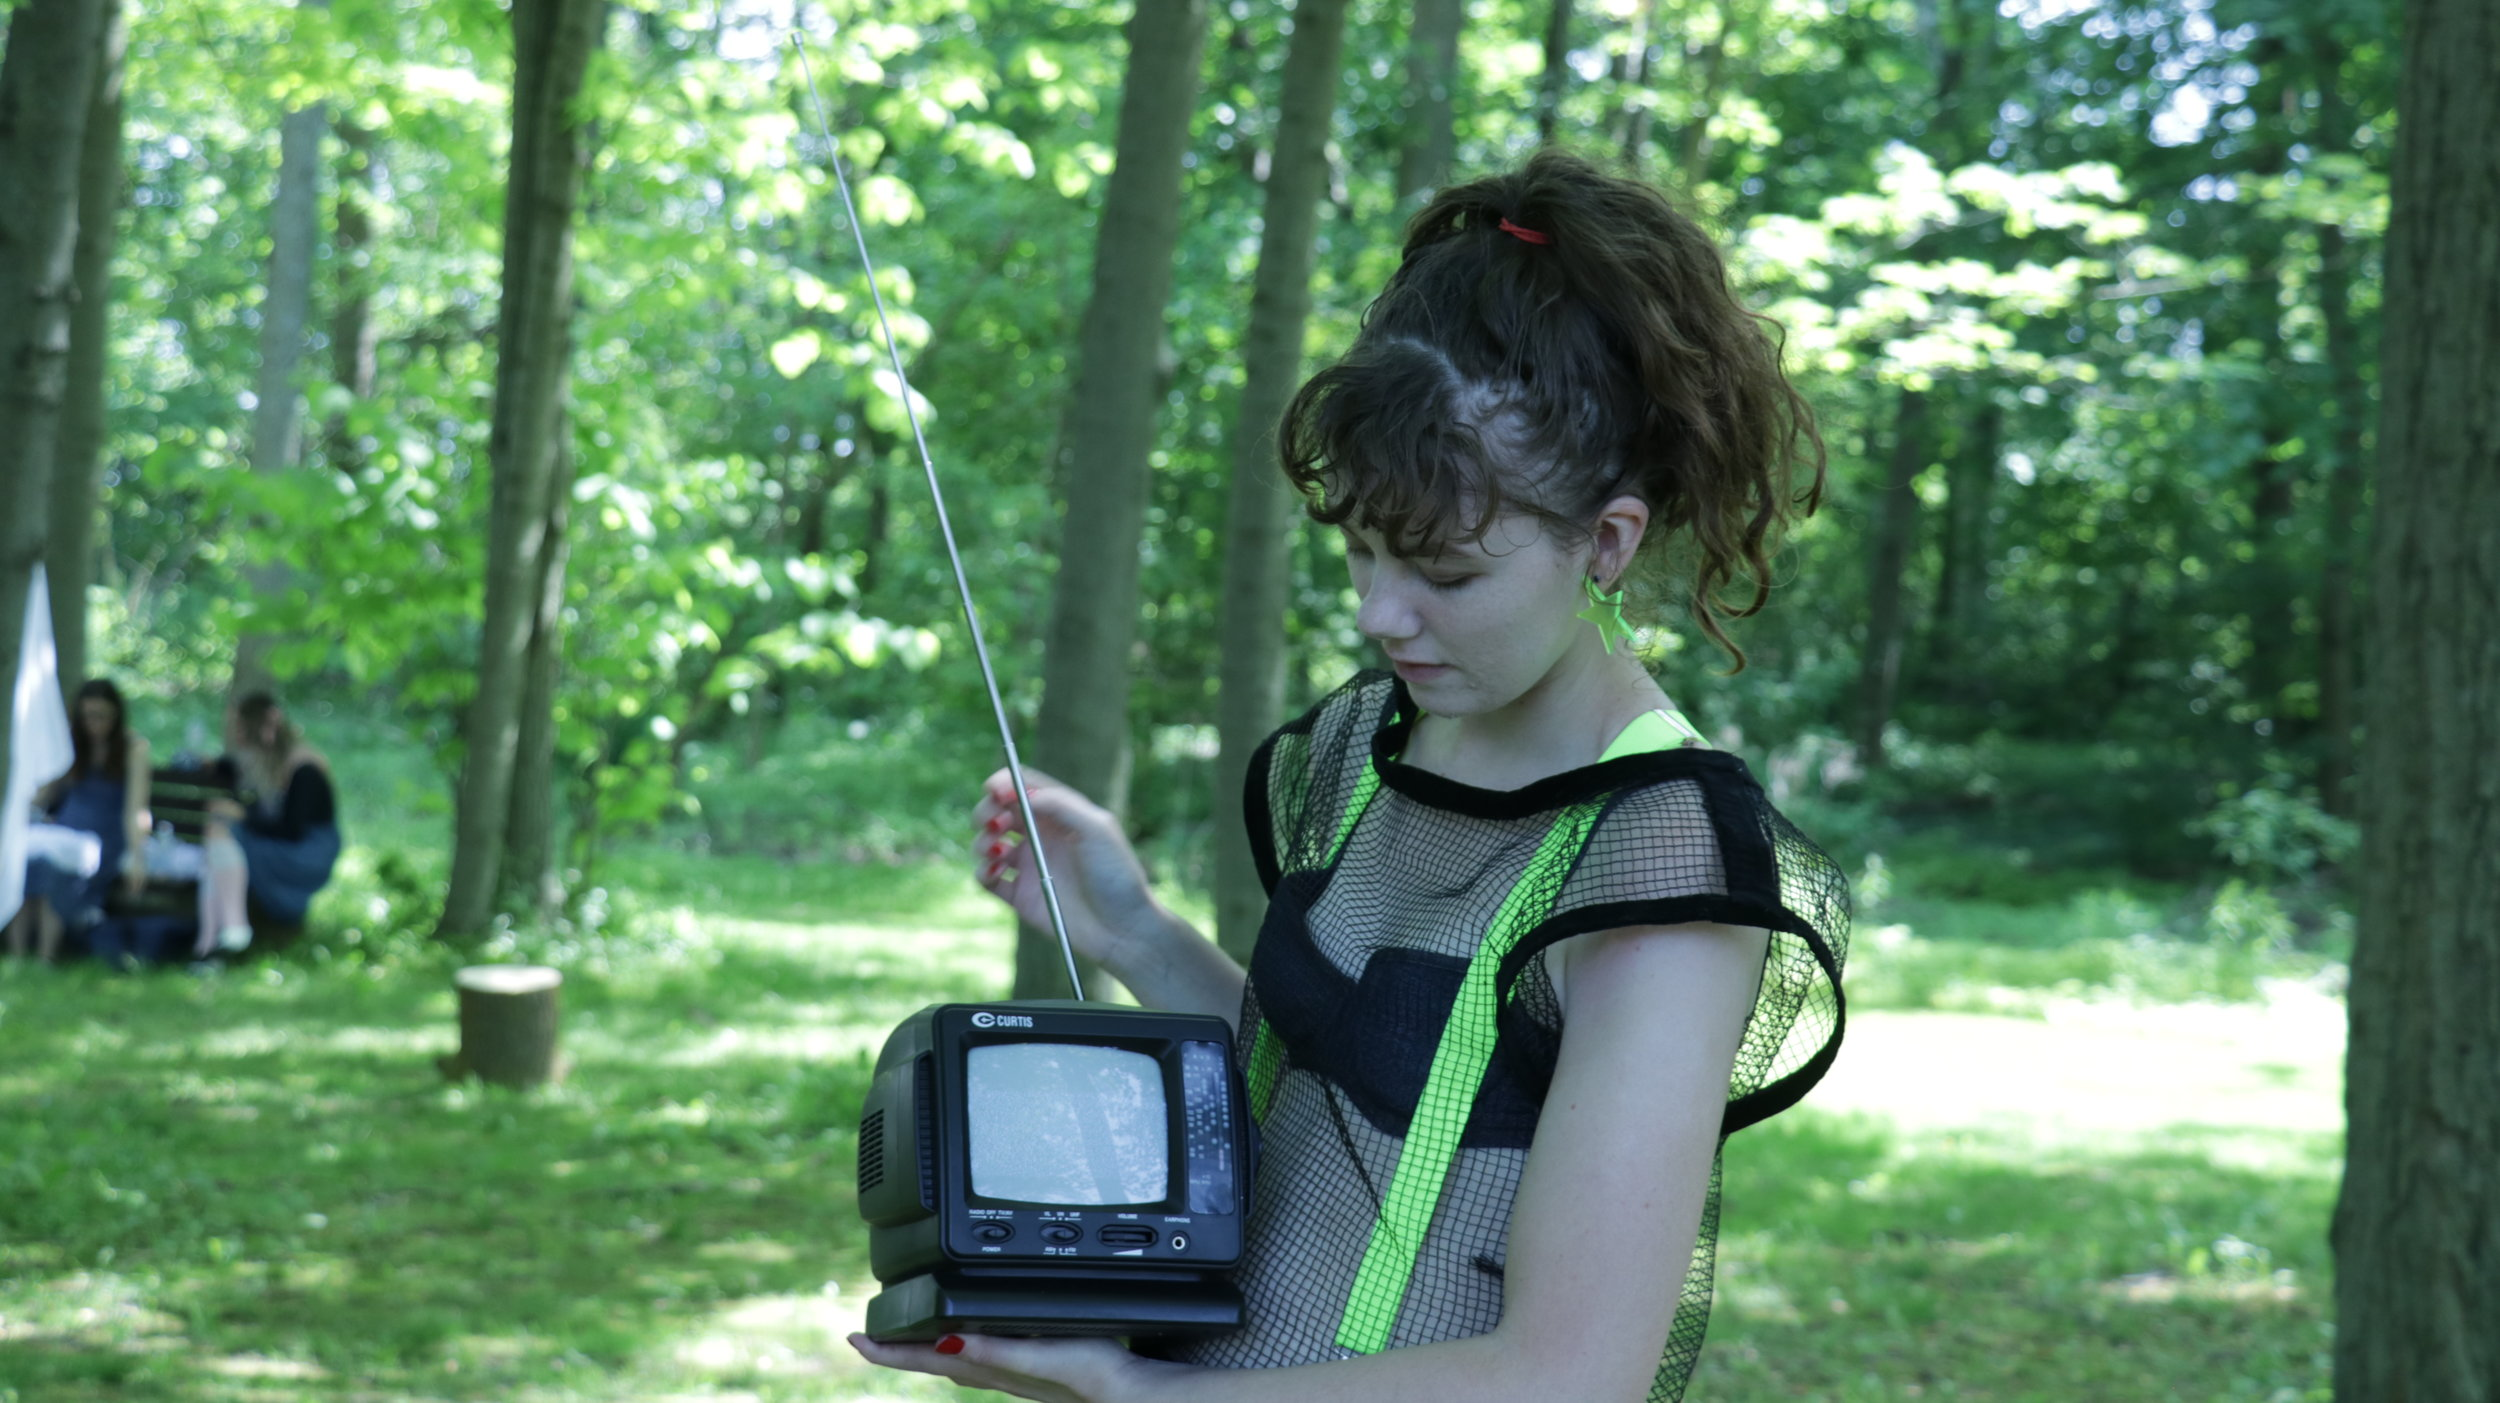 Silver Signals - (2017) A site specific performance with television radio for Landmarks: Canada's 150th, and Unsettled project at Scarborough Guild Park.